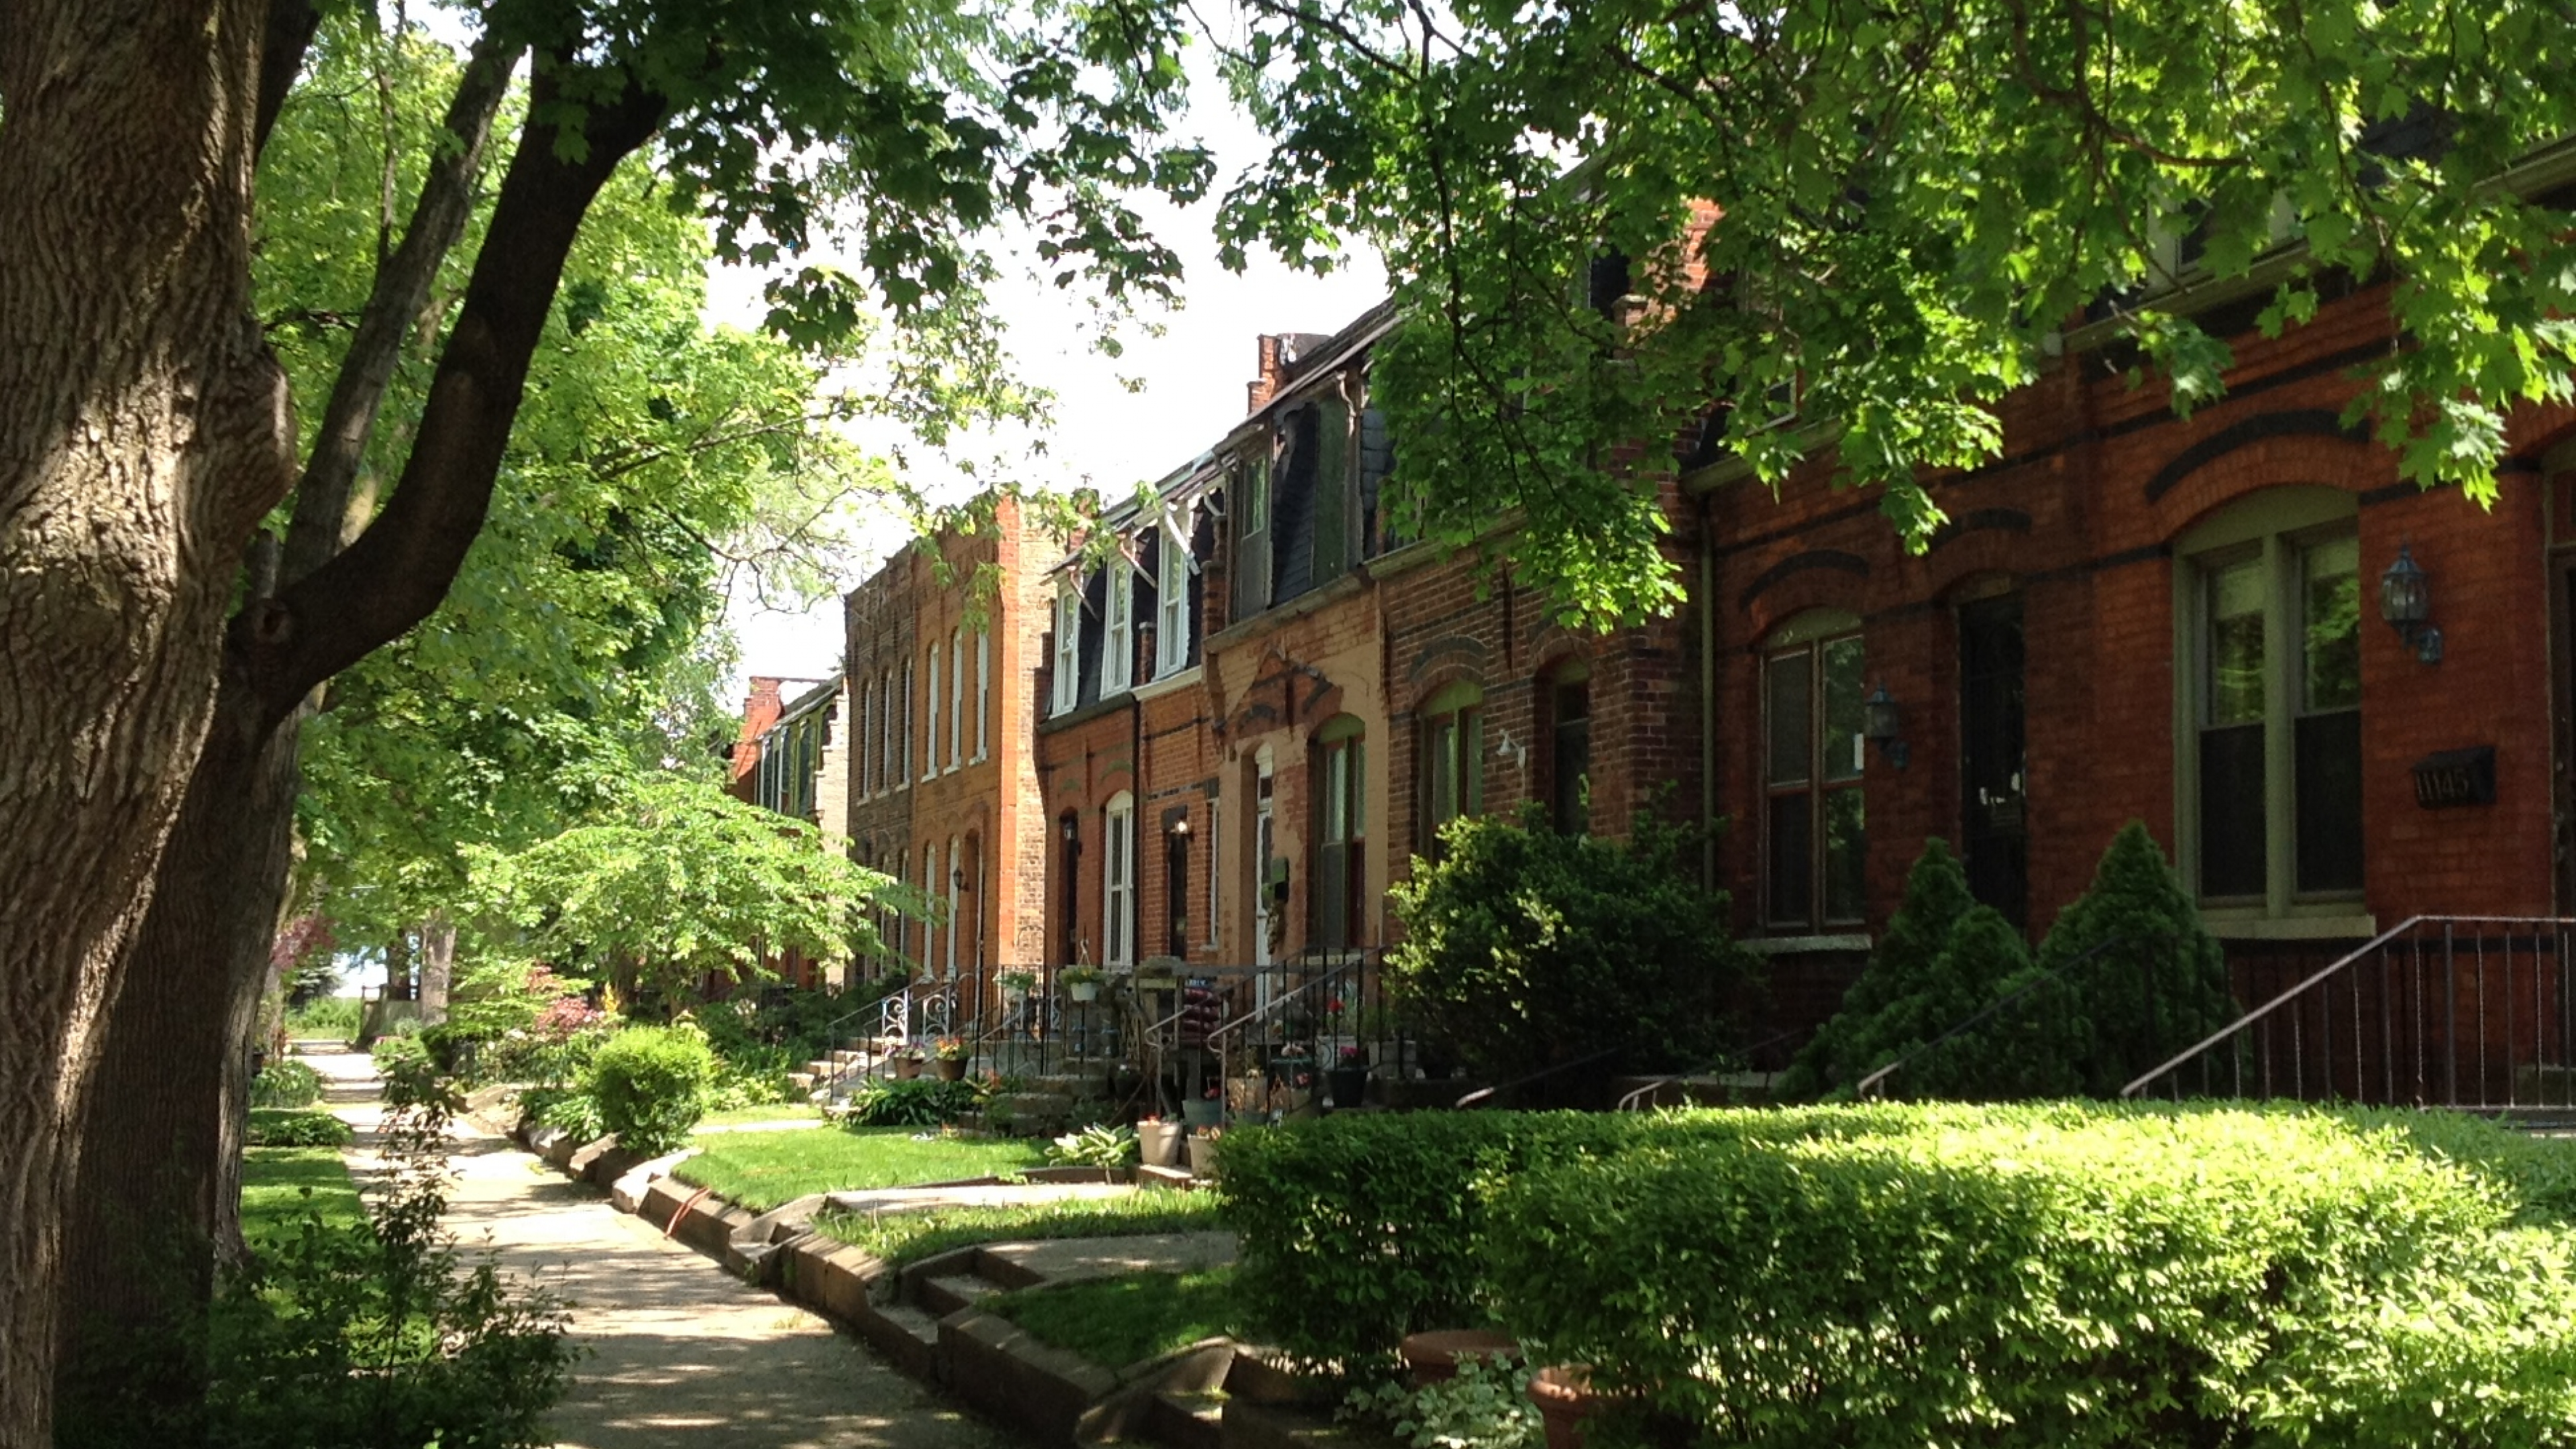 Brick homes lined along a road with green trees and lawns along Champlain Street at Pullman National Monument